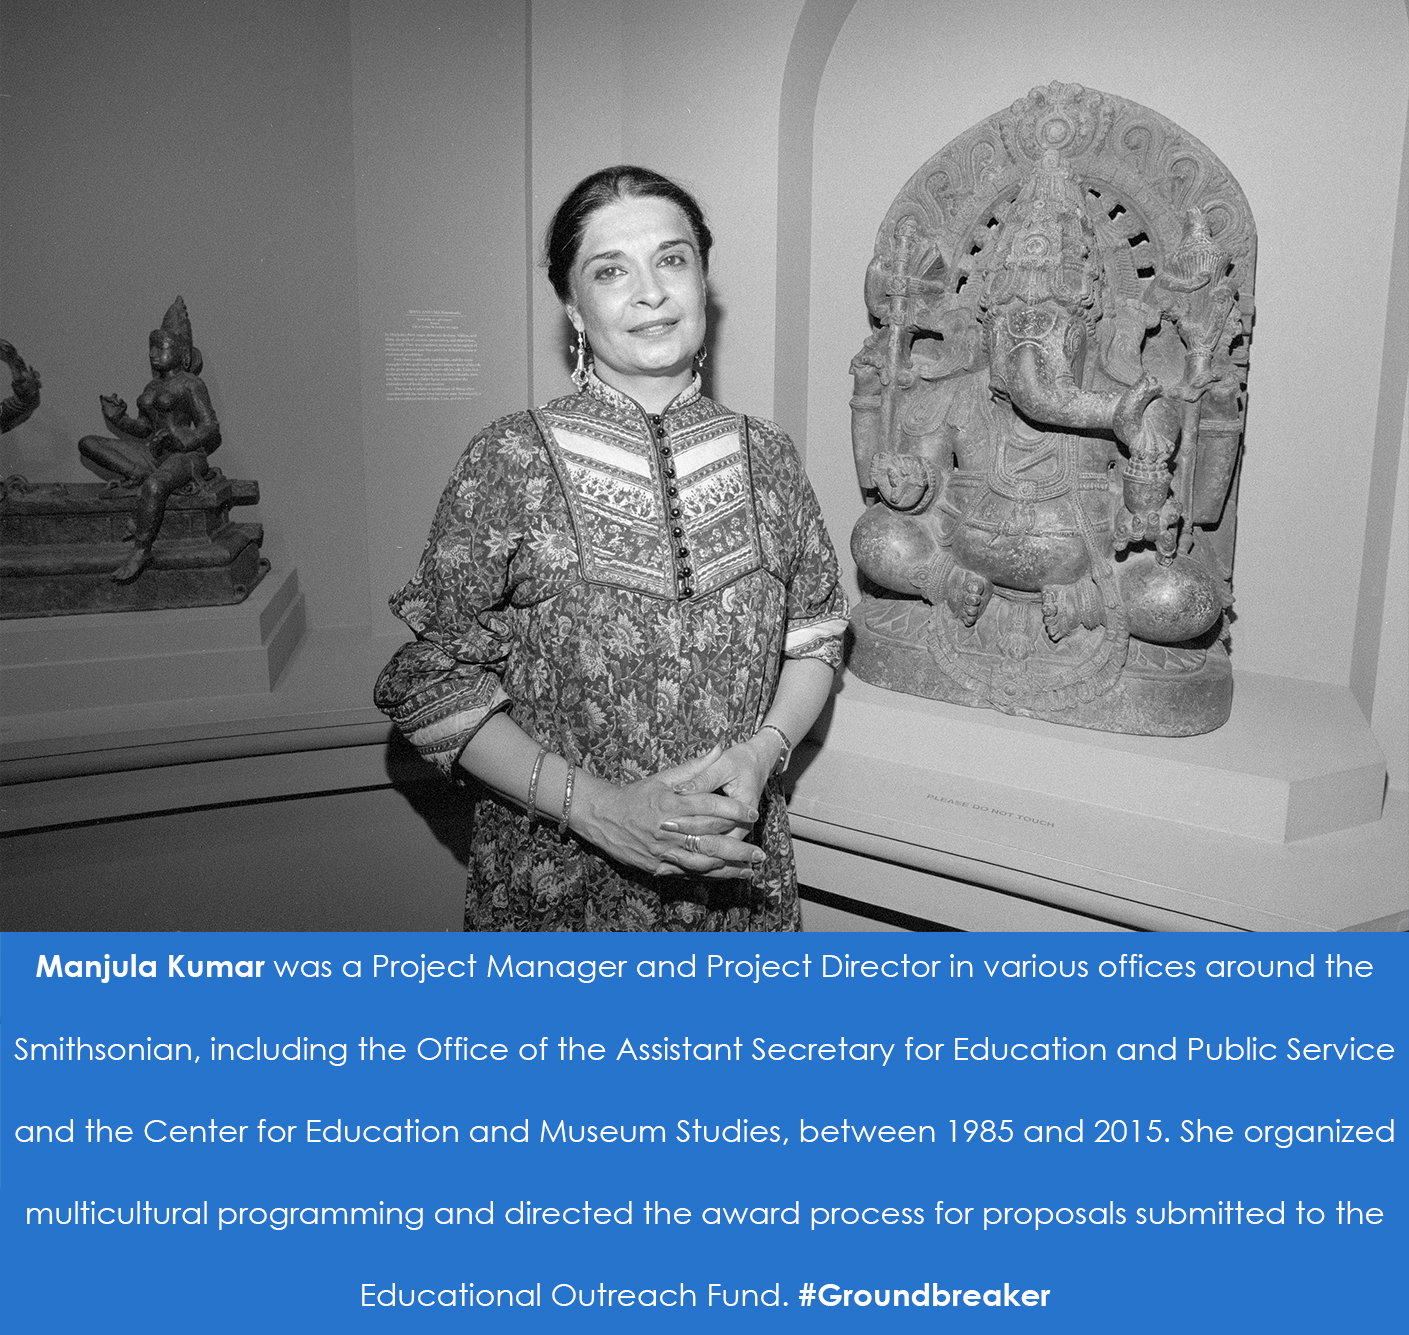 Manjula Kumar standing in front of a sculpture of Ganesha, the Hindu symbol of good fortune.